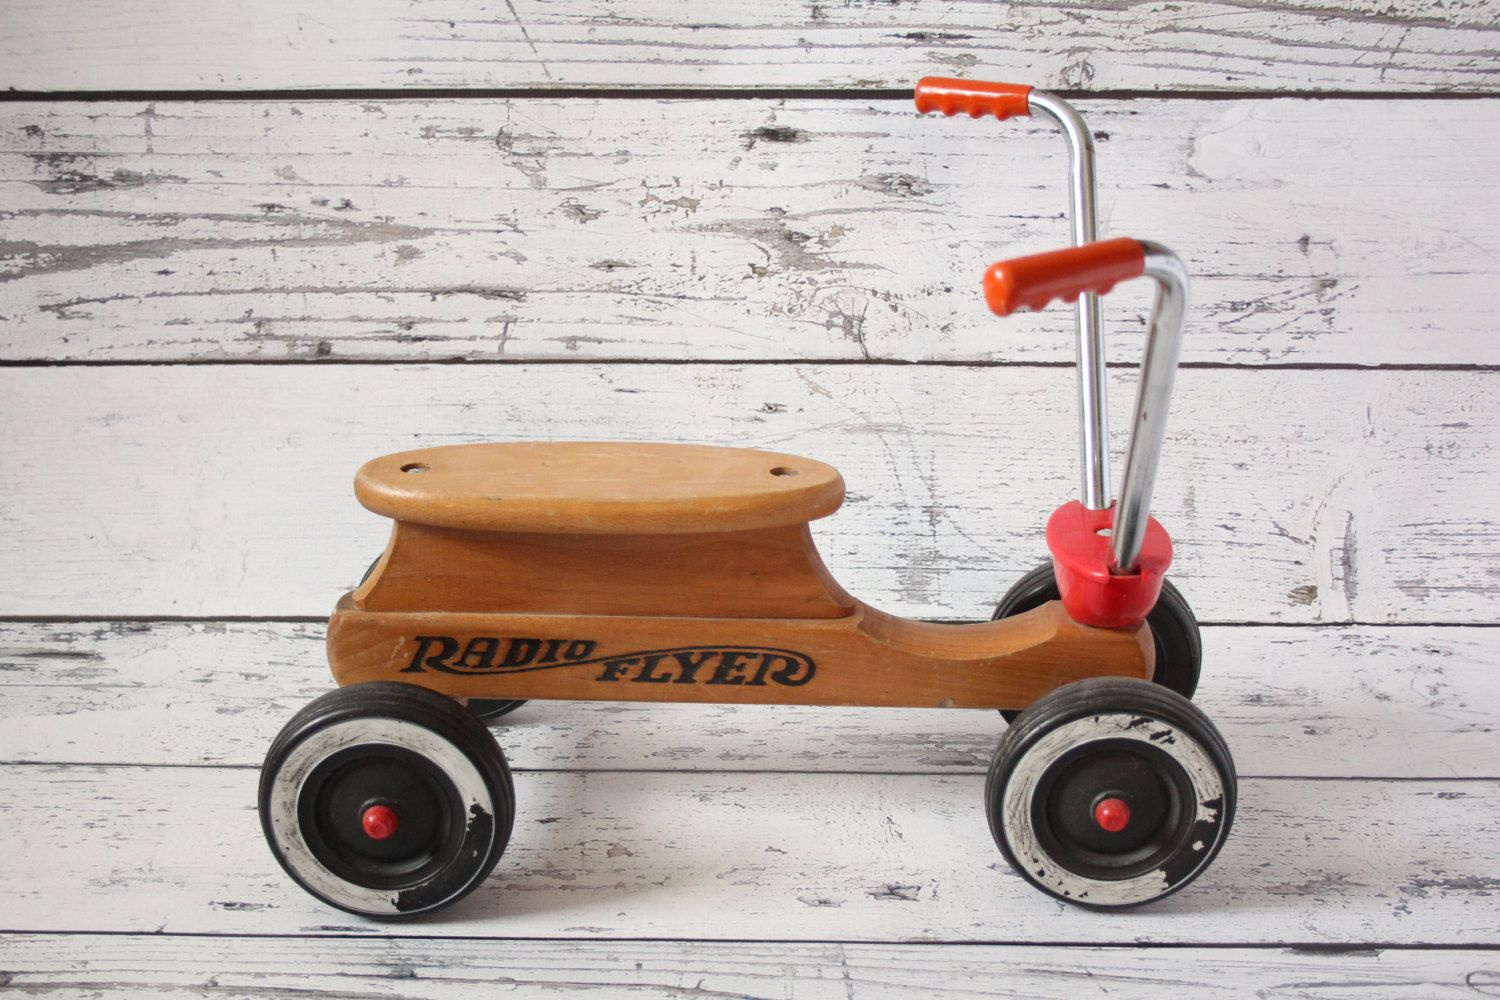 Rare Vintage Radio Flyer Maple Wood Ride On Children 39 S Scooter Push Car Toy Chrome Handlebars Red Accents Black Toddler Tricycle Vintage Radio Maple Wood